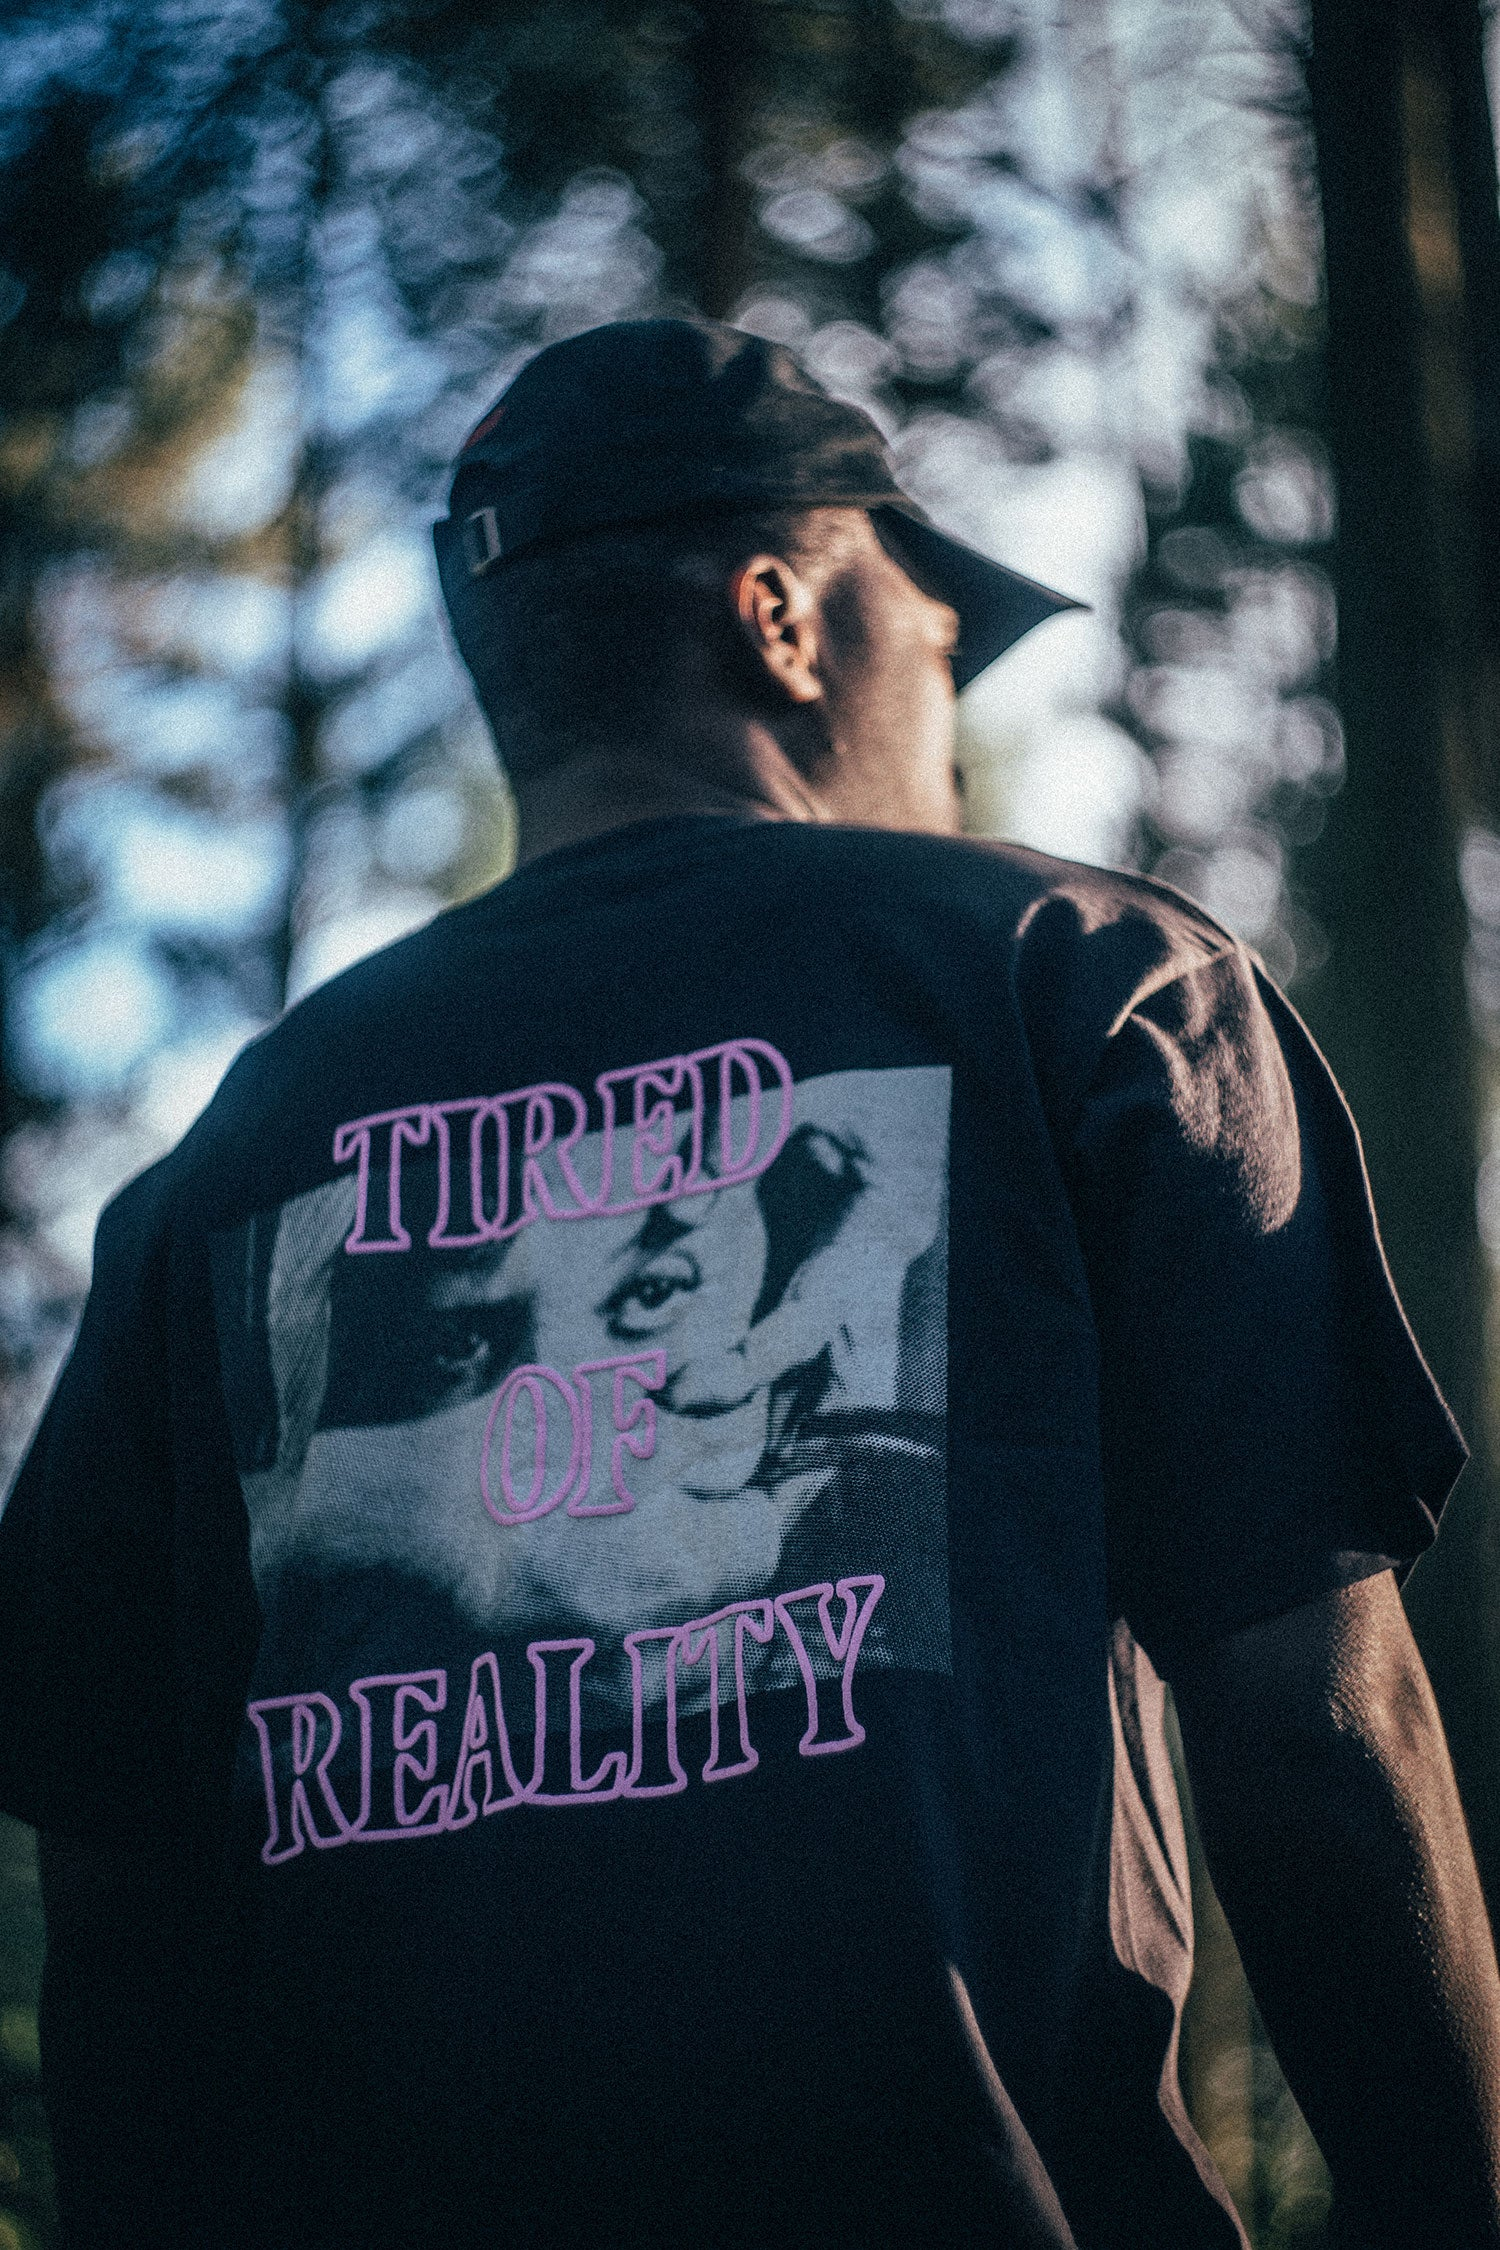 Tired of Reality